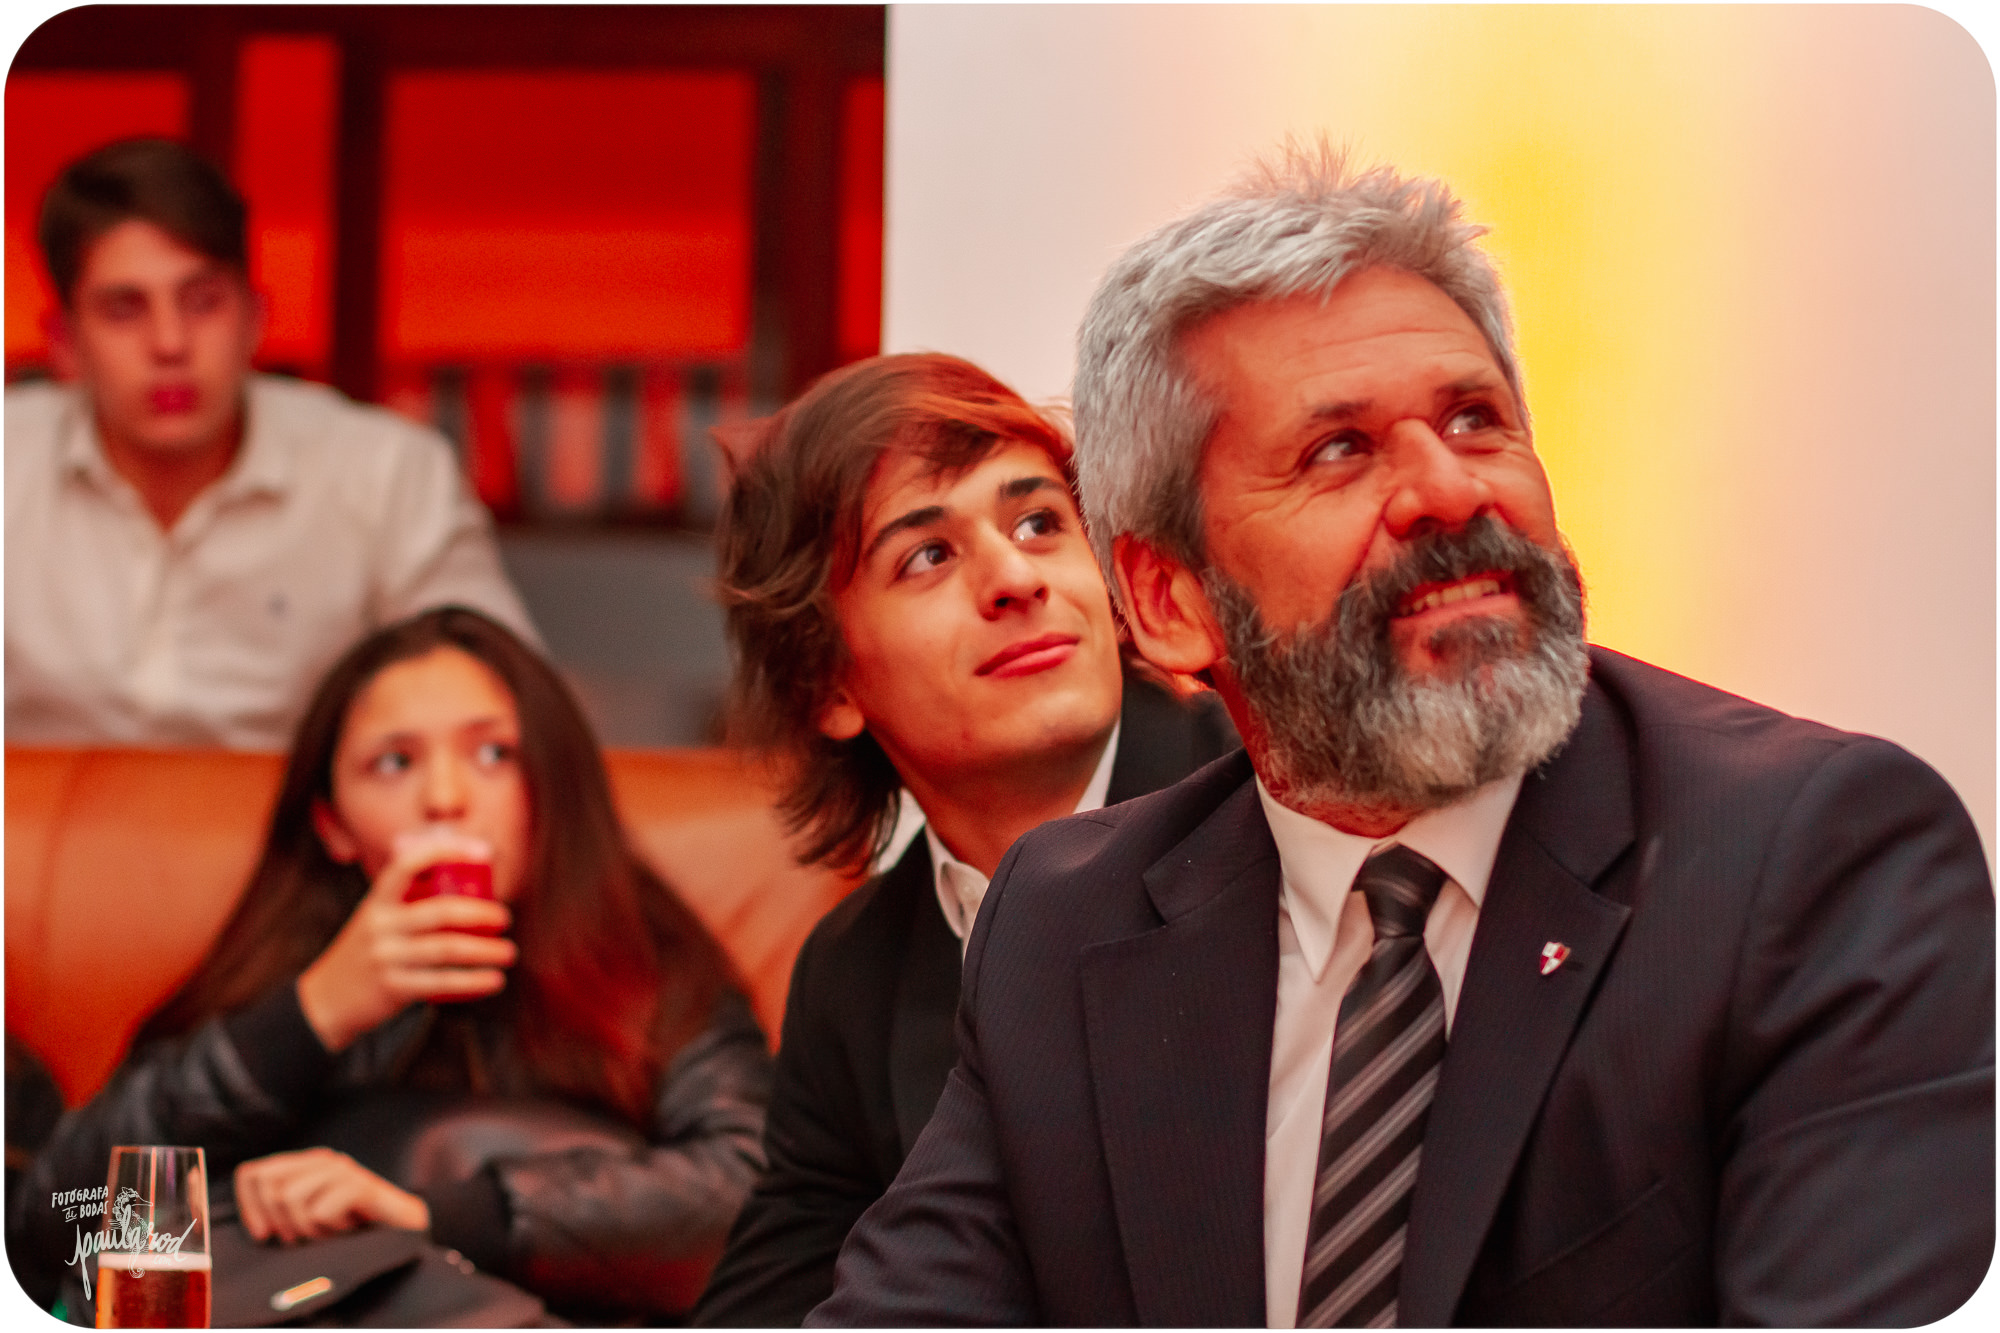 video-cronologico-para-quinces (2).jpg